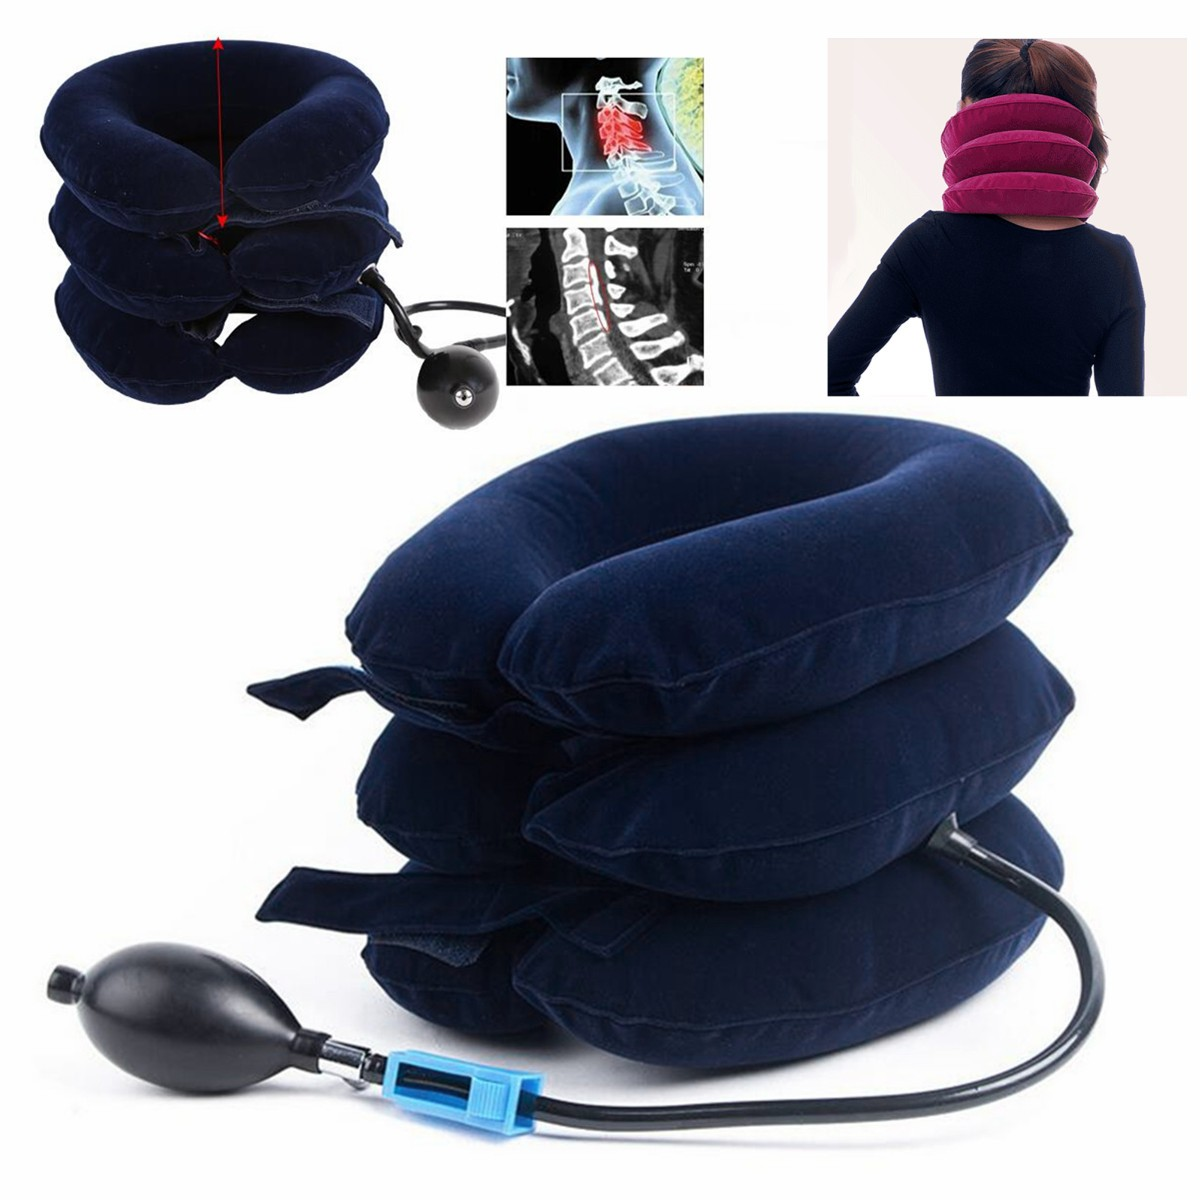 Air Inflatable Pillow Neck Brace Traction Support Device for Neck Back Head & Shoulder Pain Cervical Neck Head Pain Good For Stress Relief